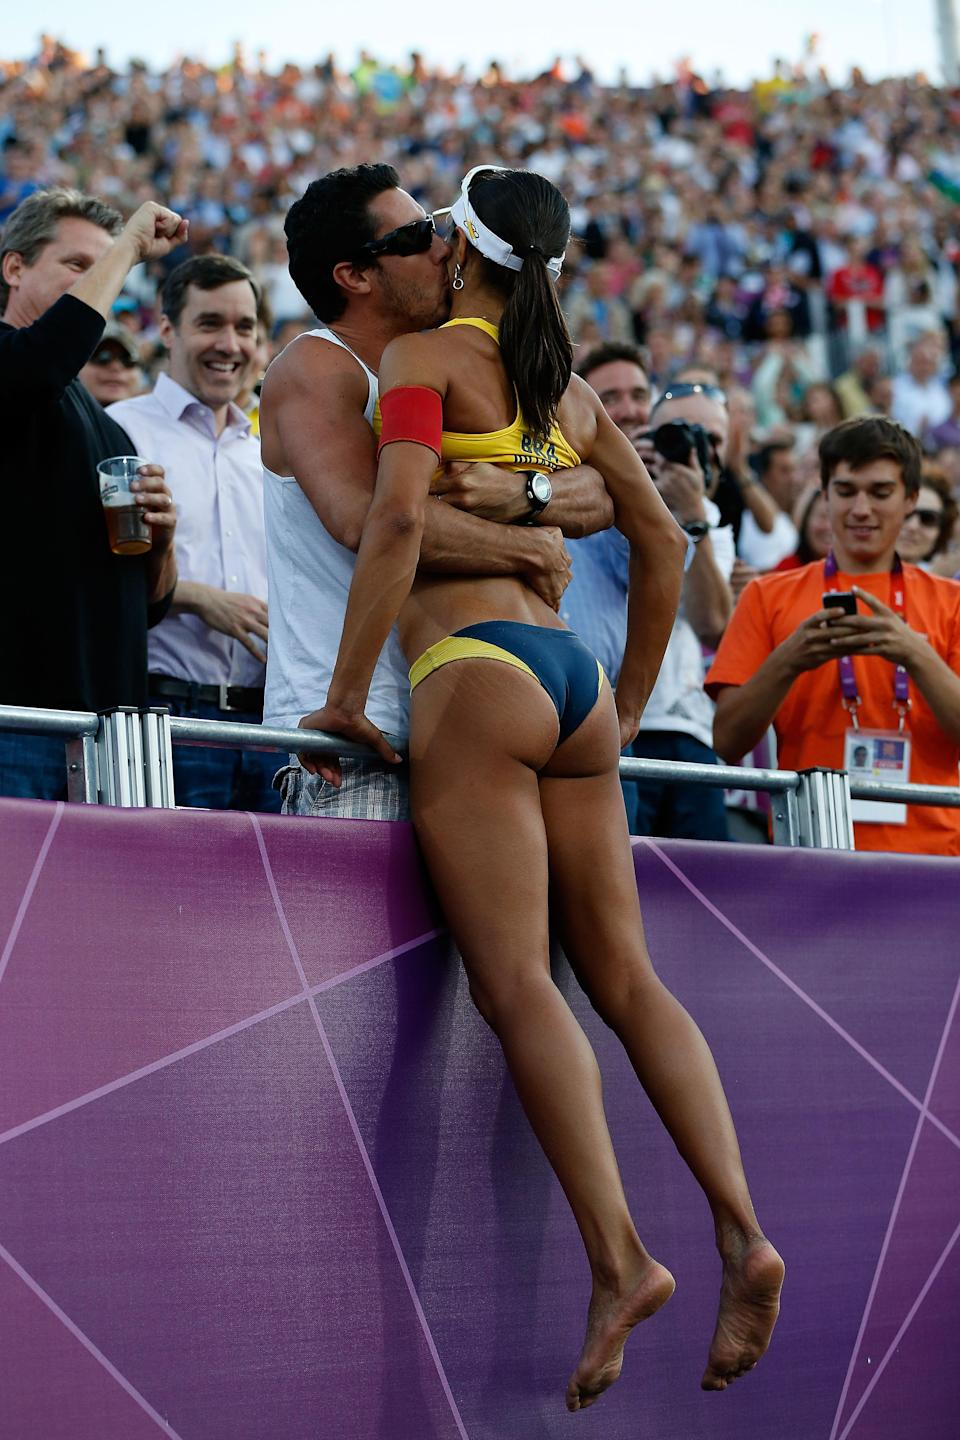 Juliana Silva of Brazil climbs into the crowd as she celebrates winning the Bronze medal in the Women's Beach Volleyball Bronze medal match against China on Day 12 of the London 2012 Olympic Games at the Horse Guard's Parade on August 8, 2012 in London, England. (Photo by Jamie Squire/Getty Images)